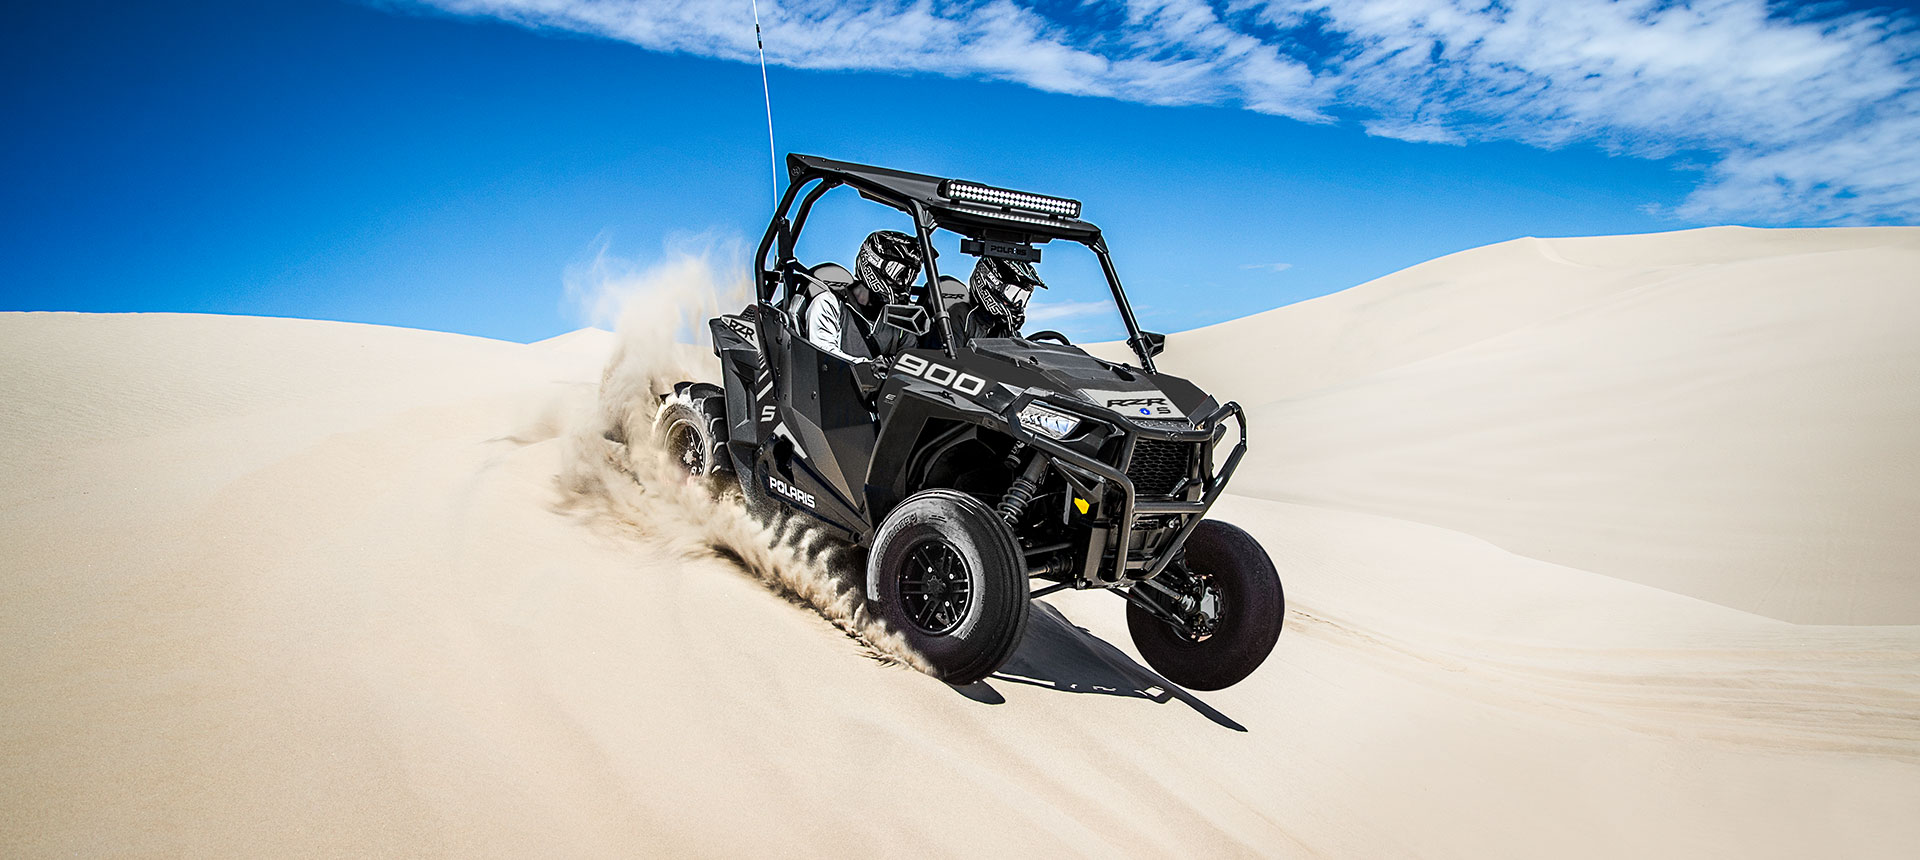 2019 Polaris RZR S 900 EPS in Chanute, Kansas - Photo 10